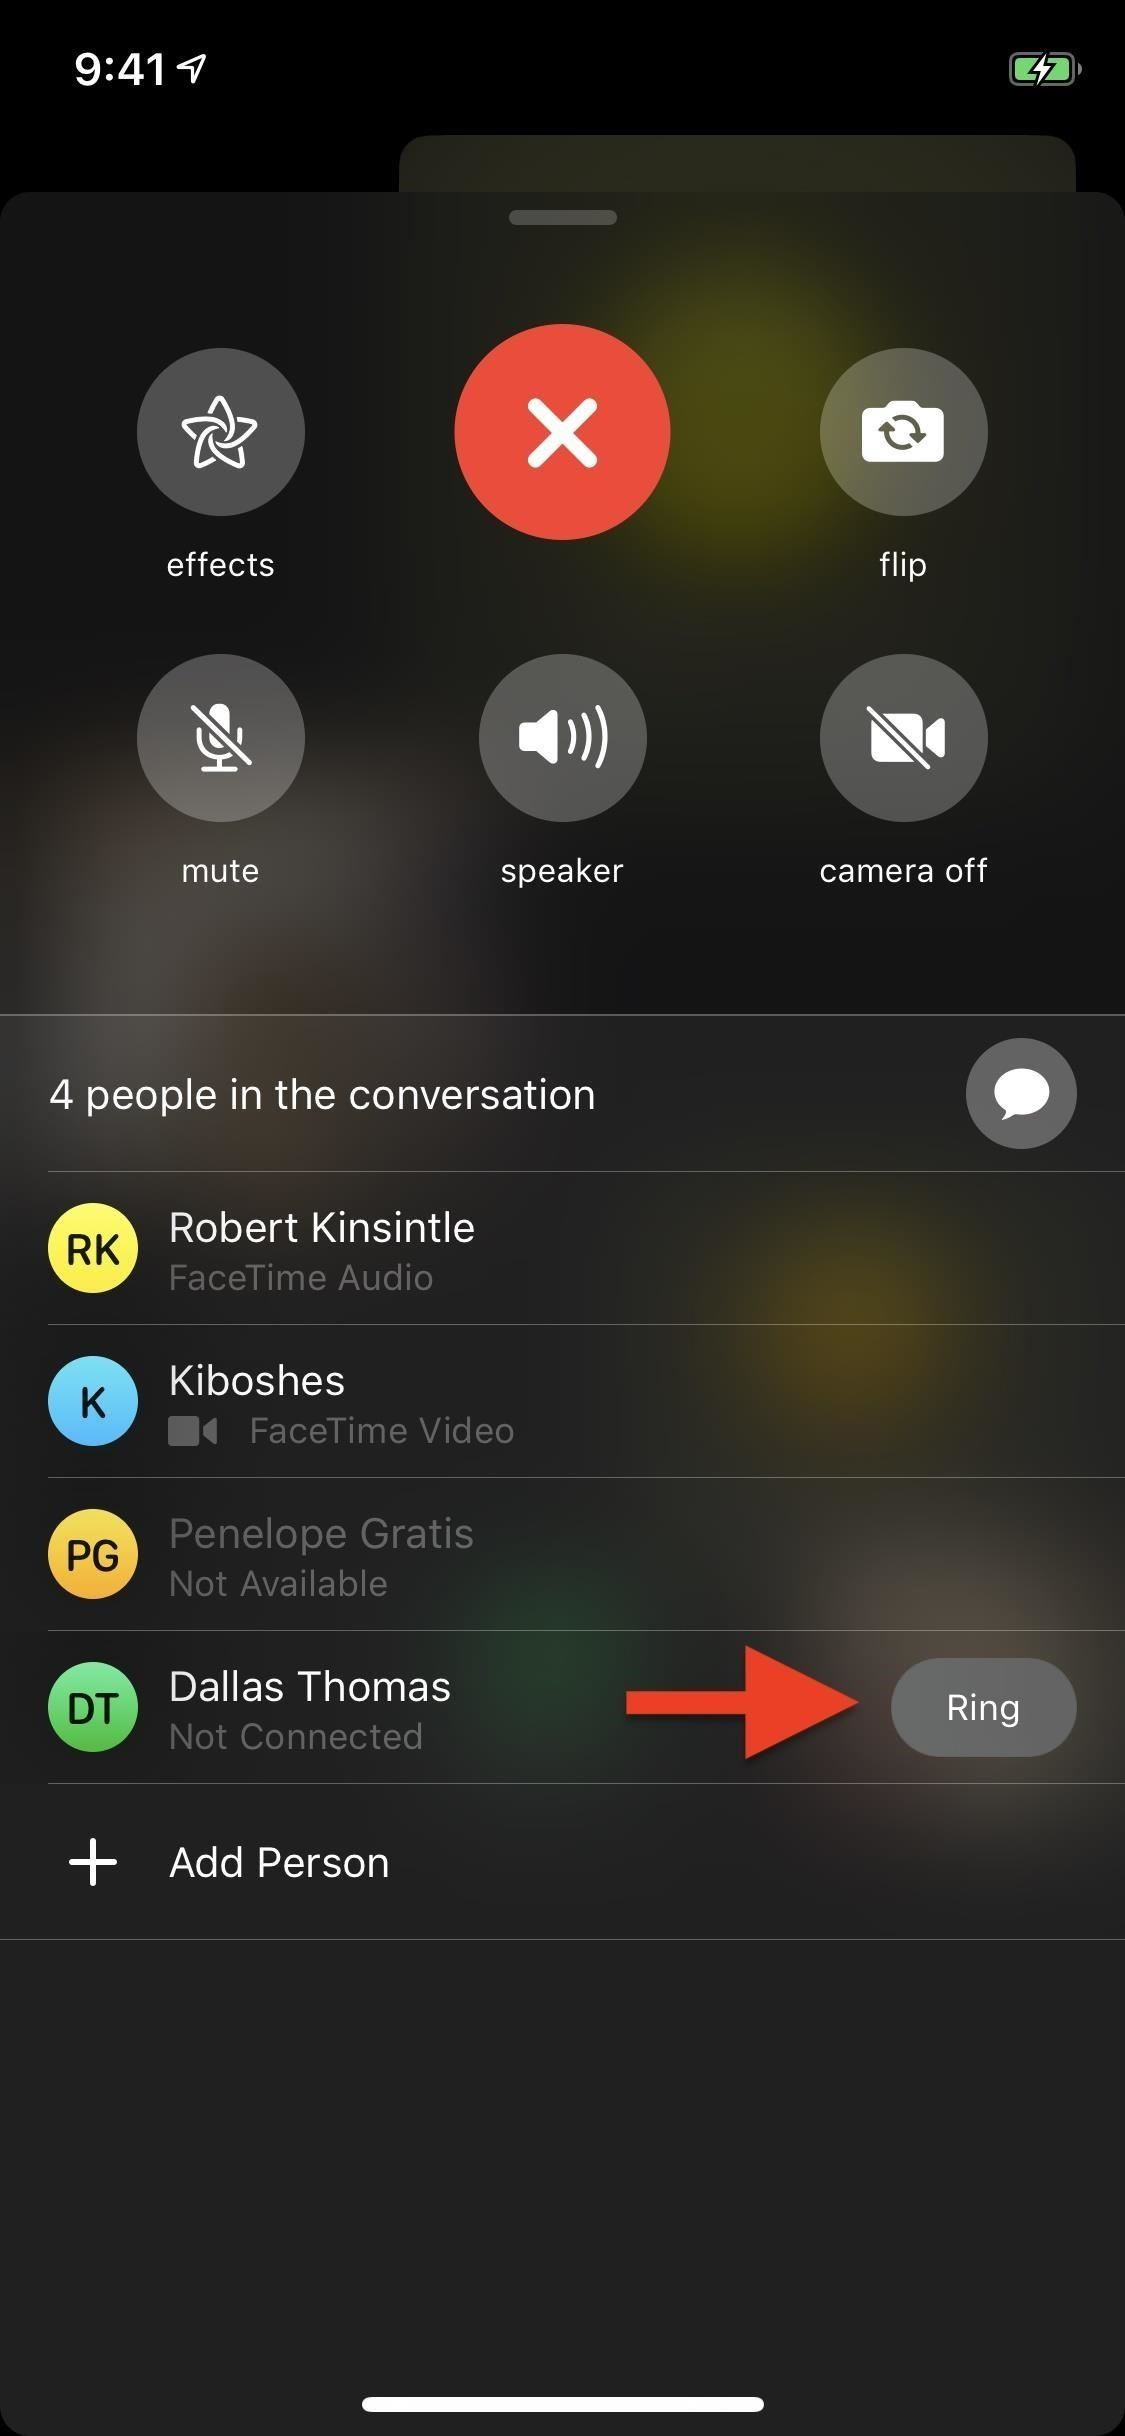 How to Use FaceTime's Group Chat on Your iPhone to Talk to More Than One Person at a Time